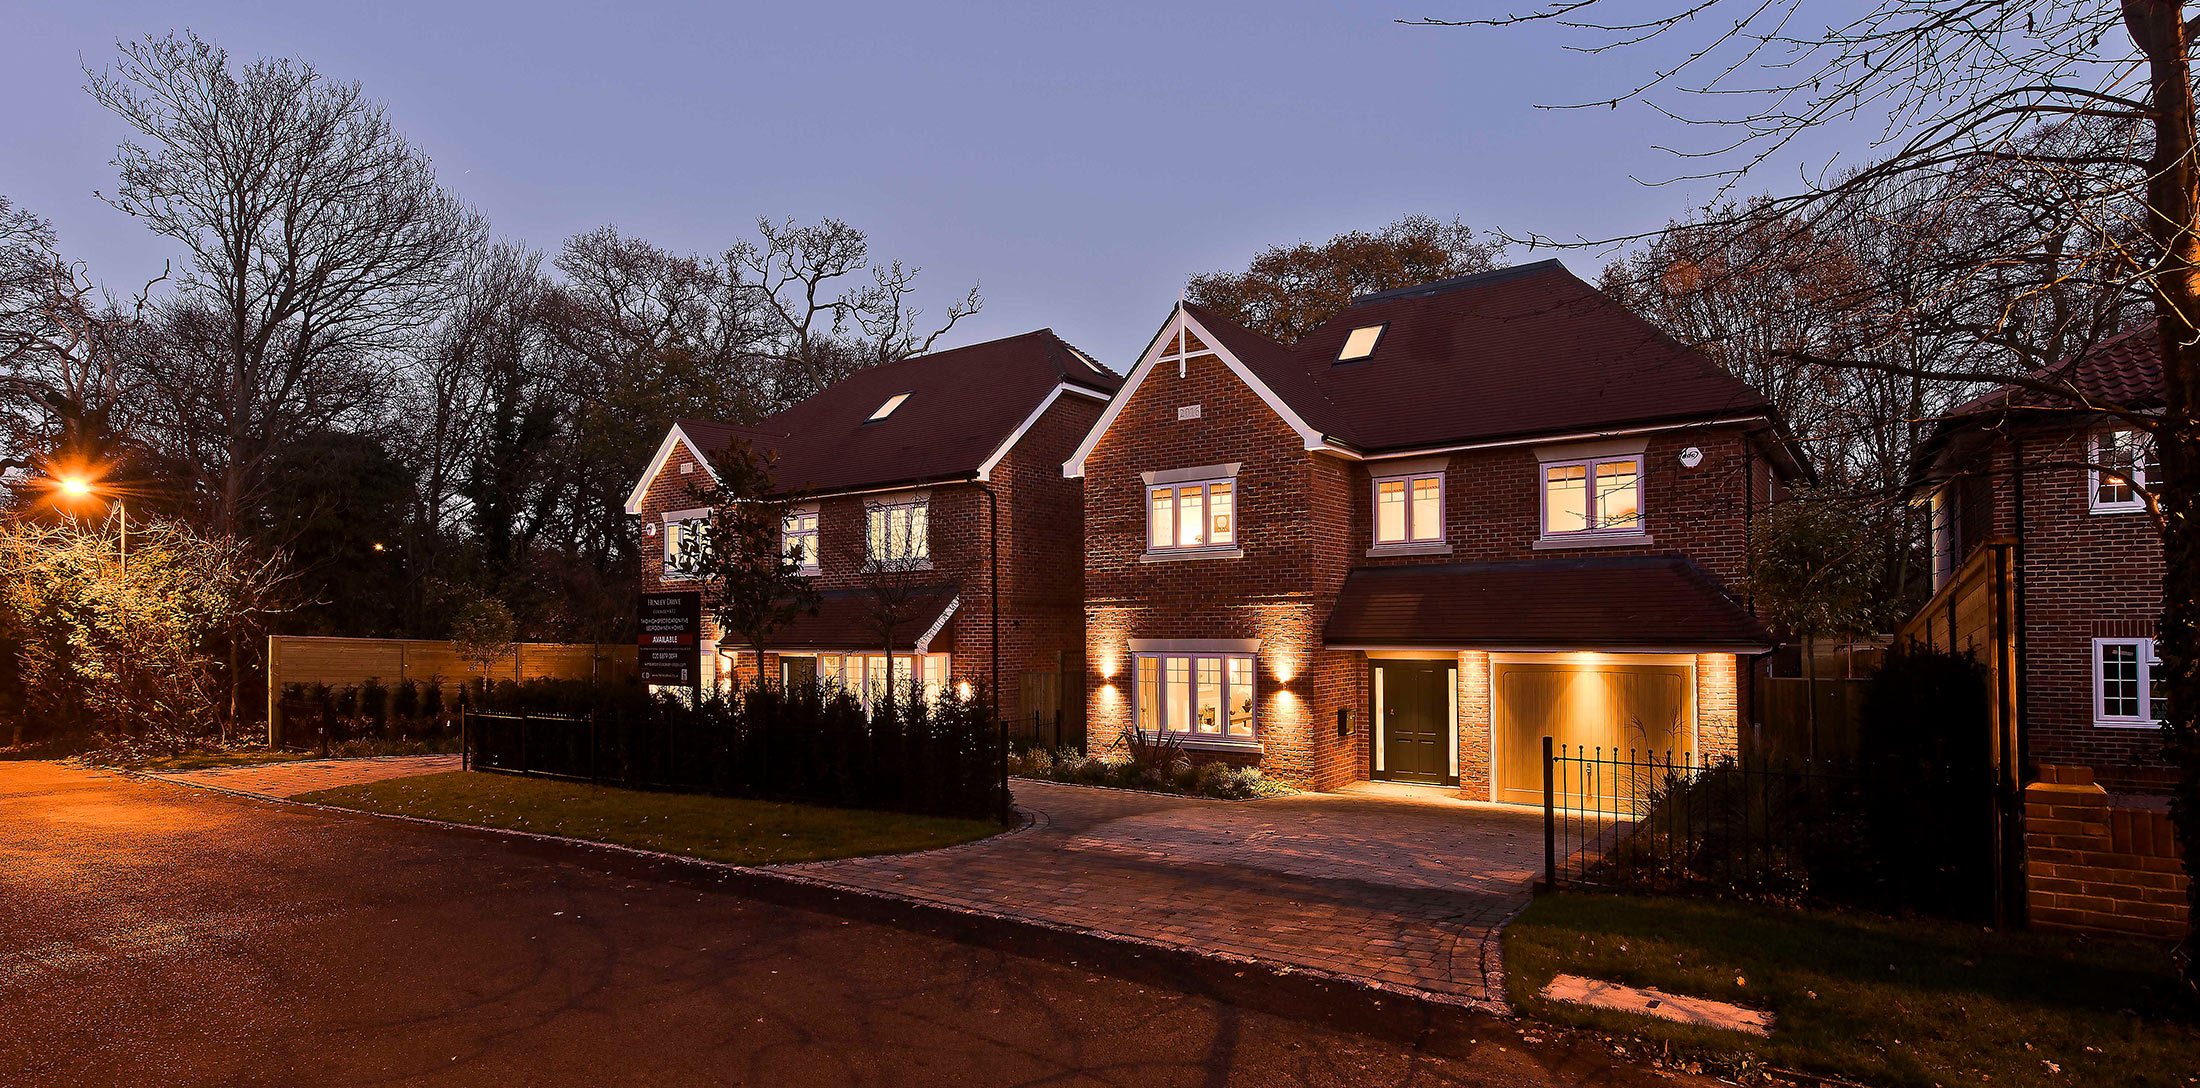 concept-developments-henley-drive-coombe-hill-dusk-3